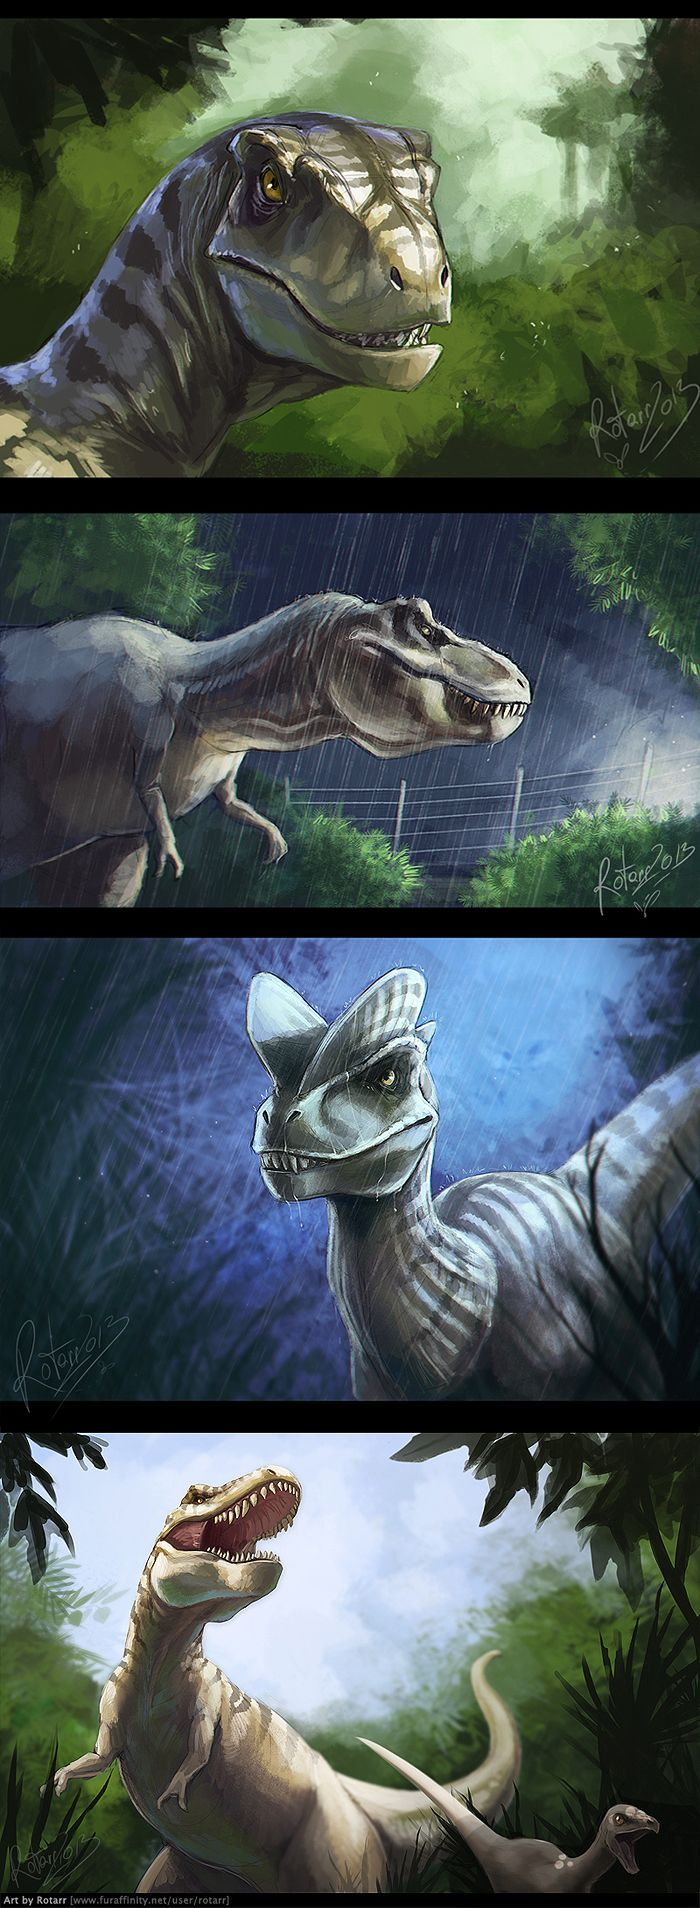 Jurassic Park Dinosaurs by FlyQueen The Entertainments